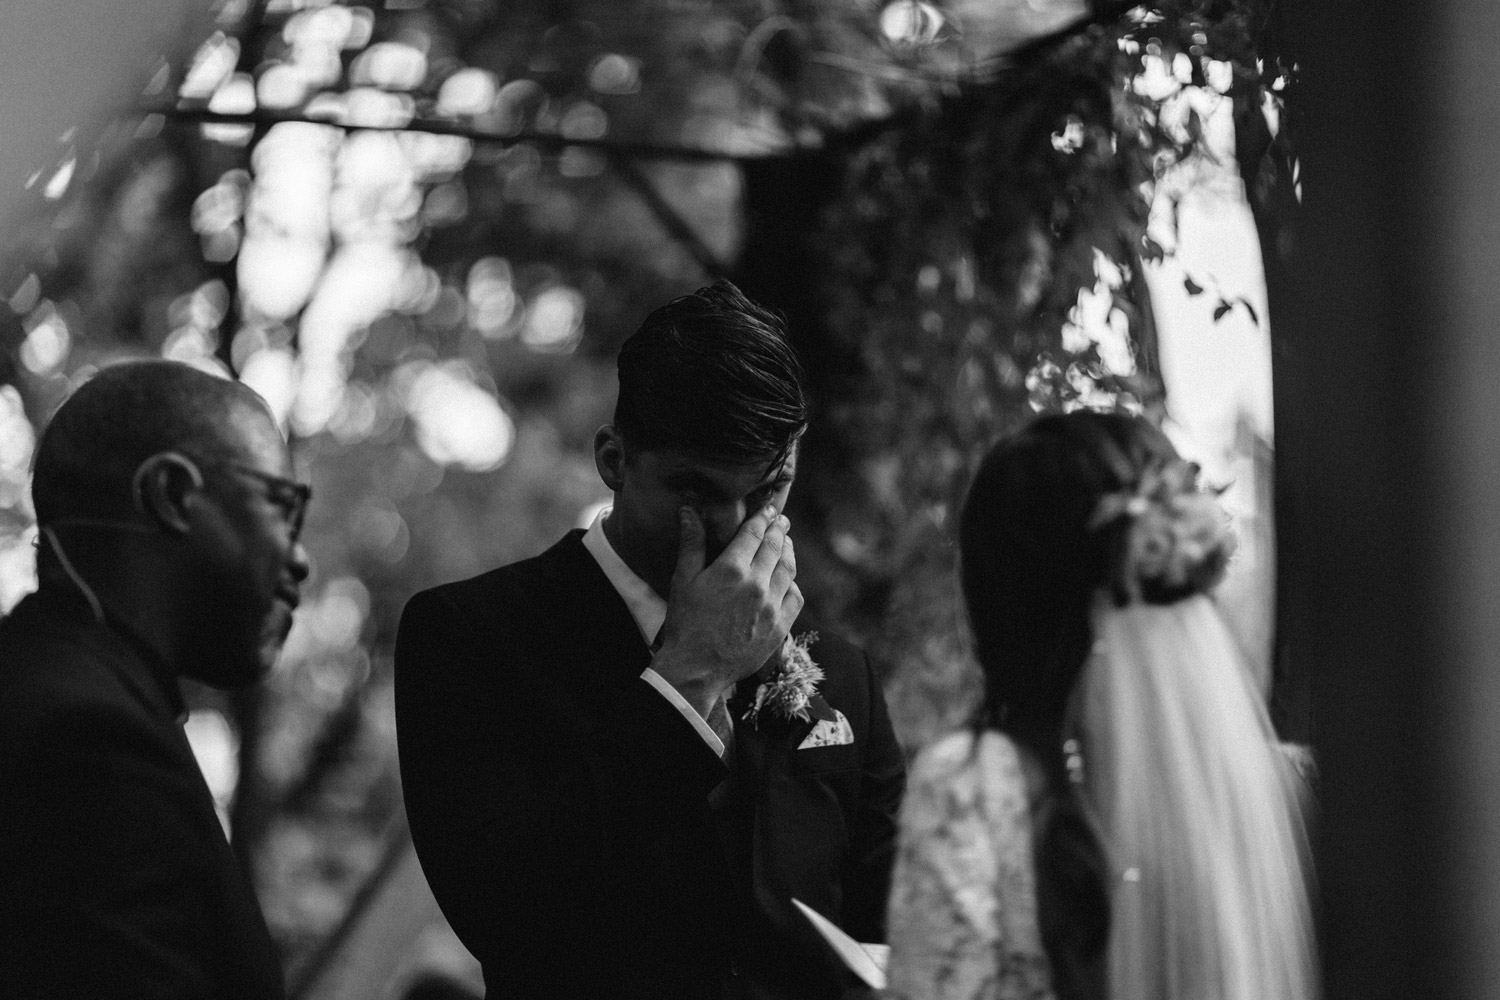 Emotional Outdoor Wedding Ceremony by geneoh photography